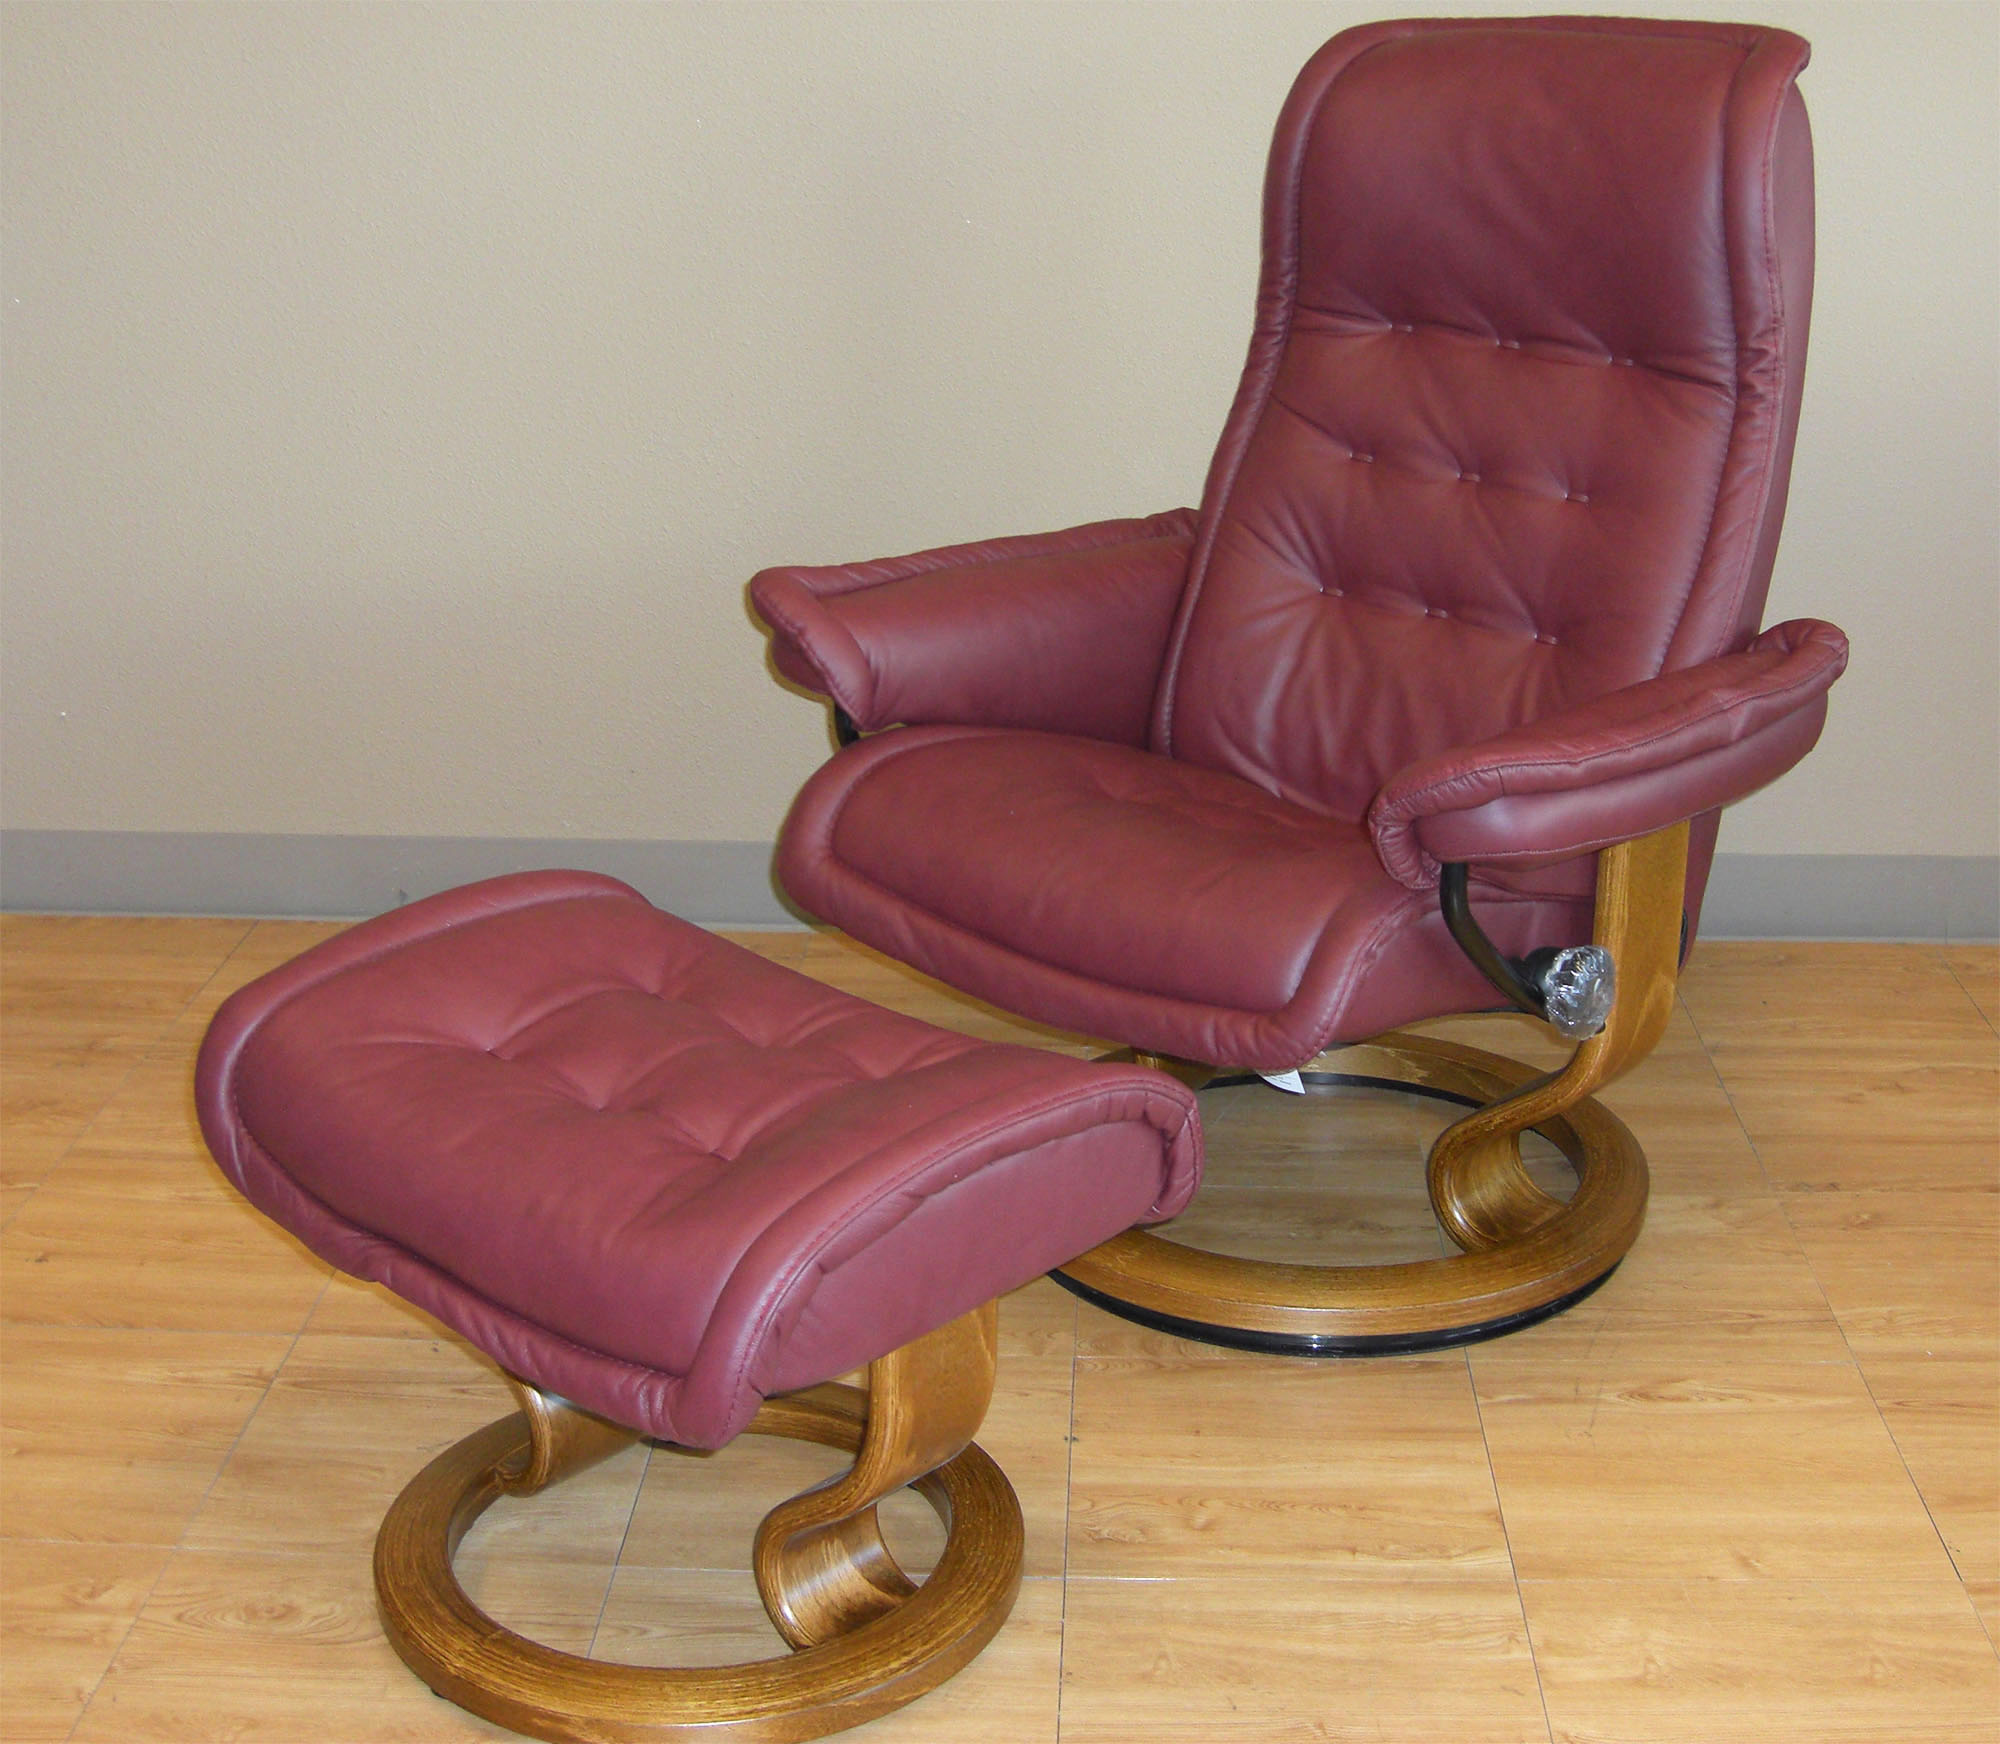 Stressless Sofa Ottoman Stressless Royal Paloma Winered Leather Recliner Chair